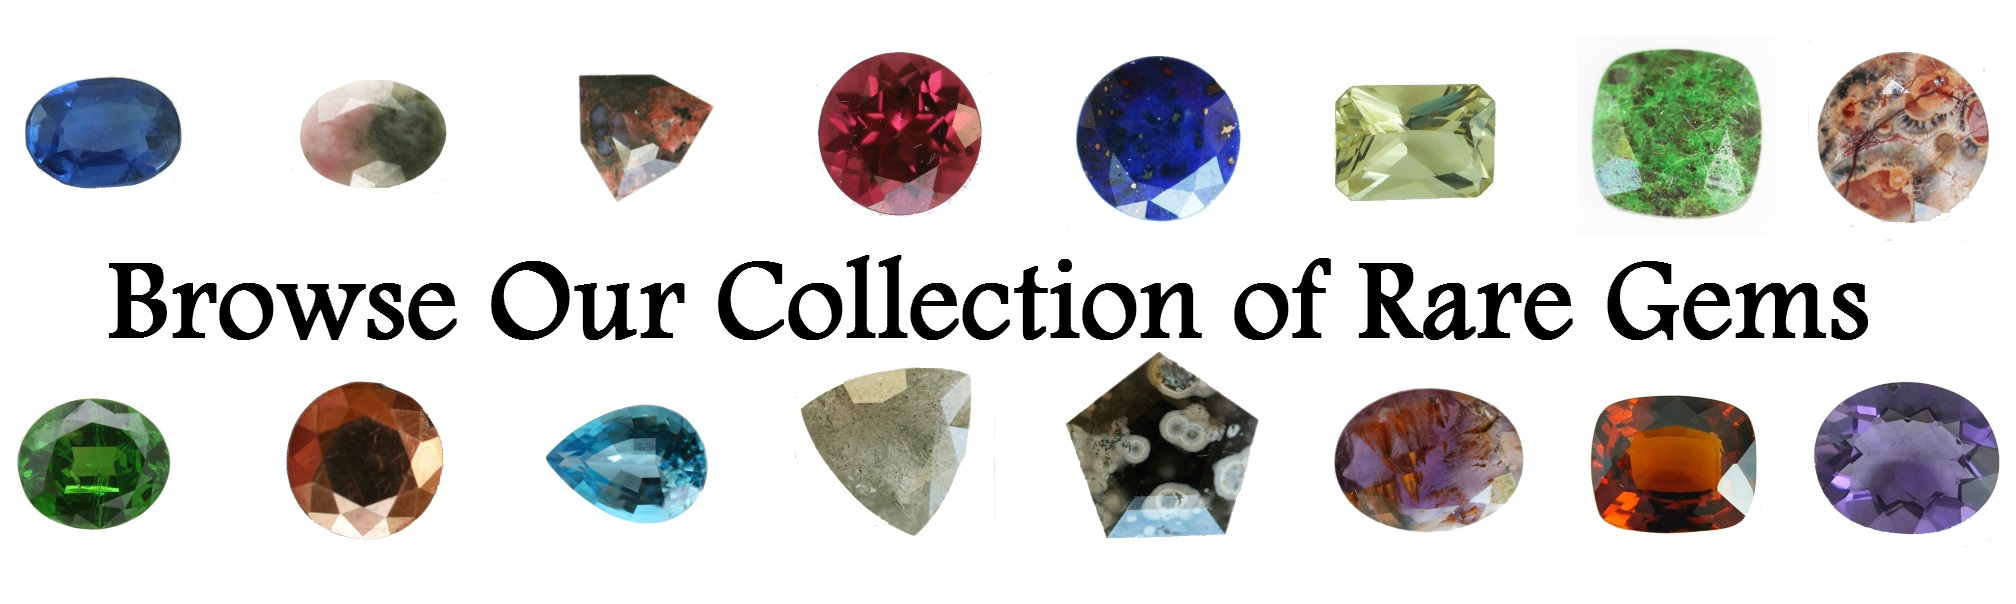 1001 Rare Gemstones | Rare Gemstones for Collectors and Gemologists